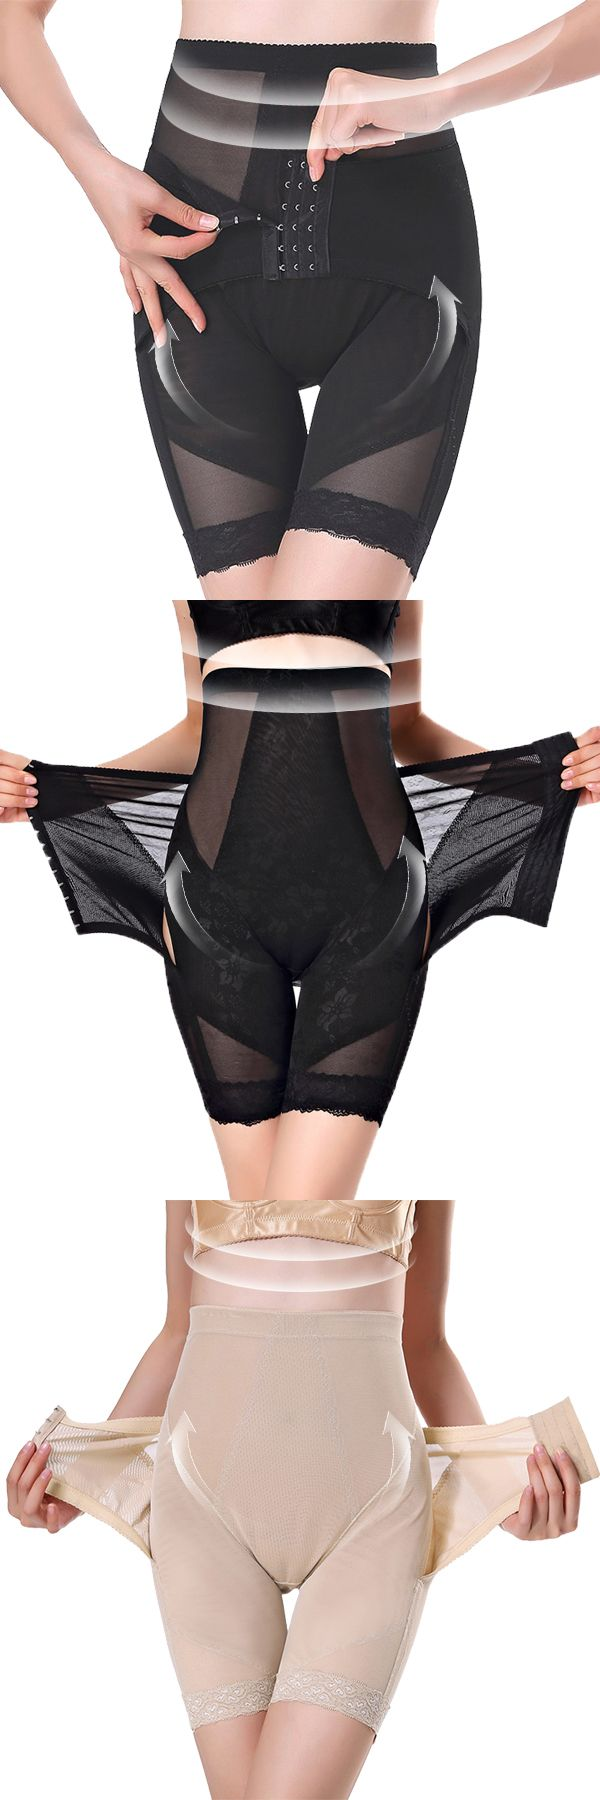 High Waisted Perfect Shaping Front Closure Shapewear #fashion #style #UnderwearModel